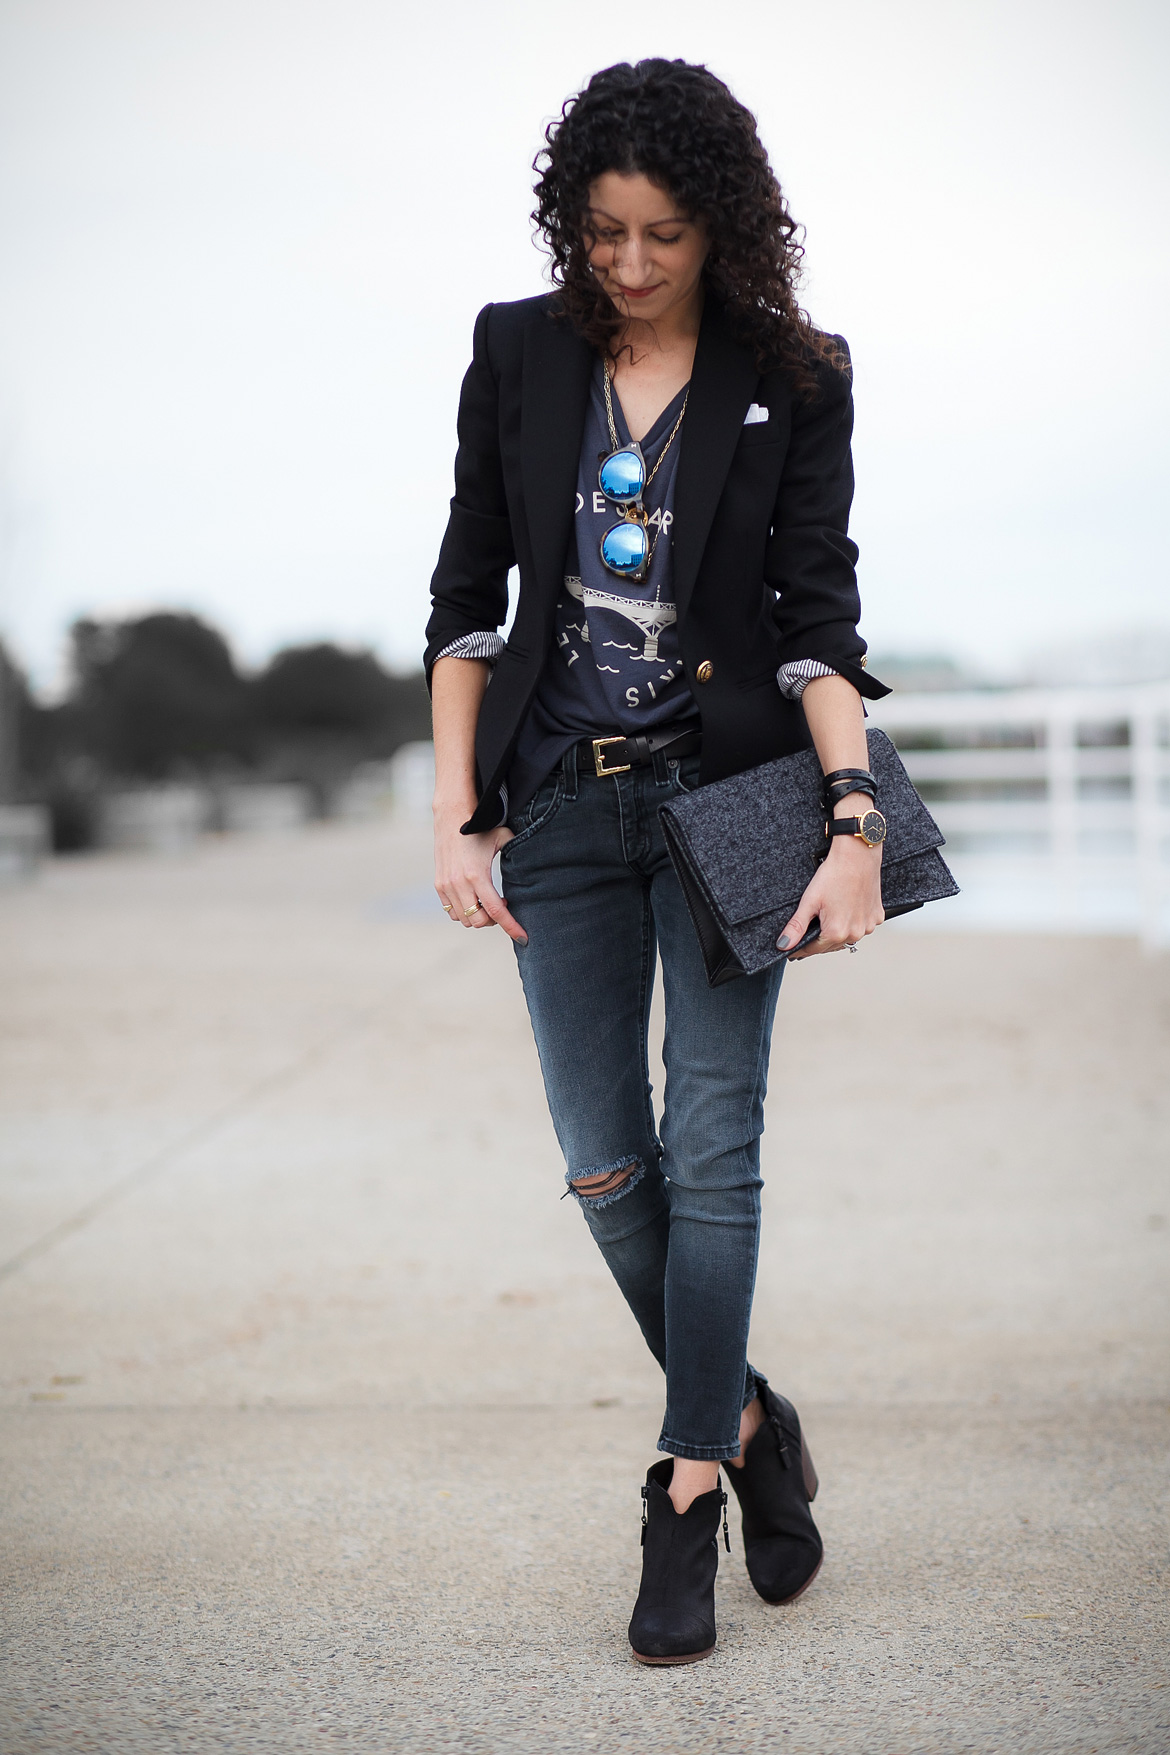 Graphic t-shirt and blazer outfit idea